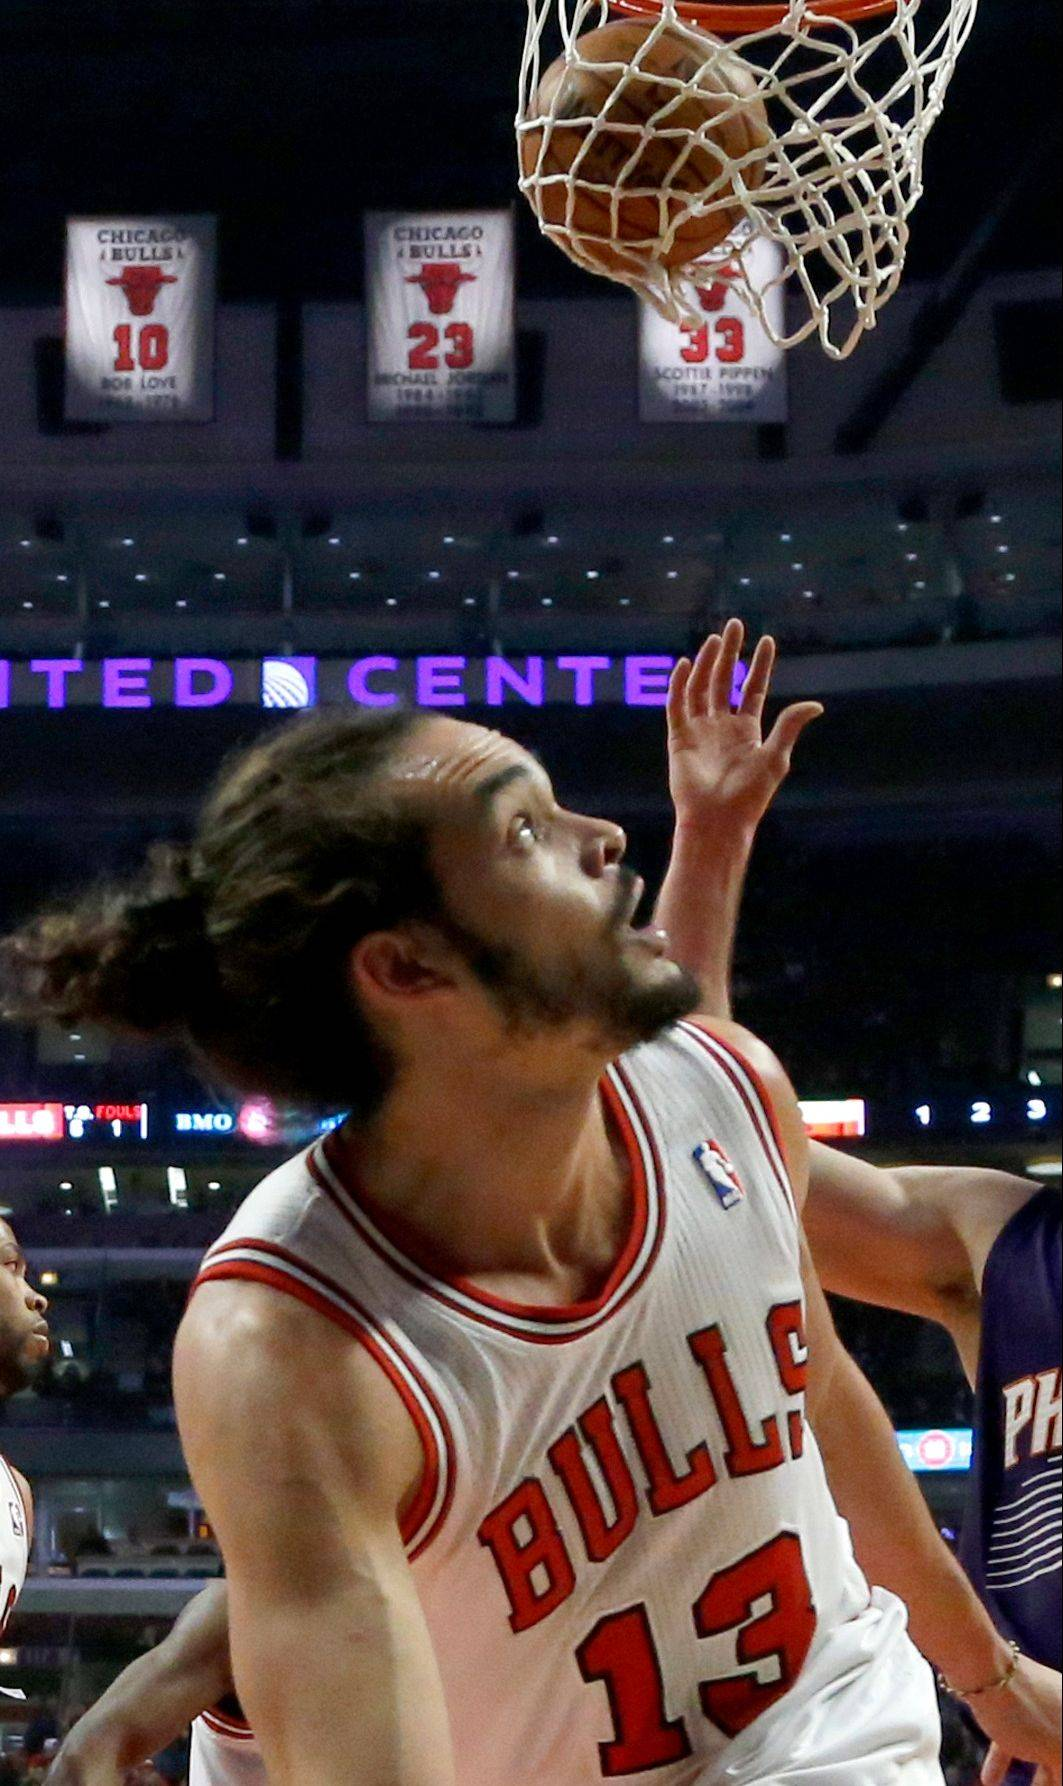 Luol Deng�s gone, but there�s no looking back for Joakim Noah and the rest of the Bulls, who should still make a run at the playoffs.